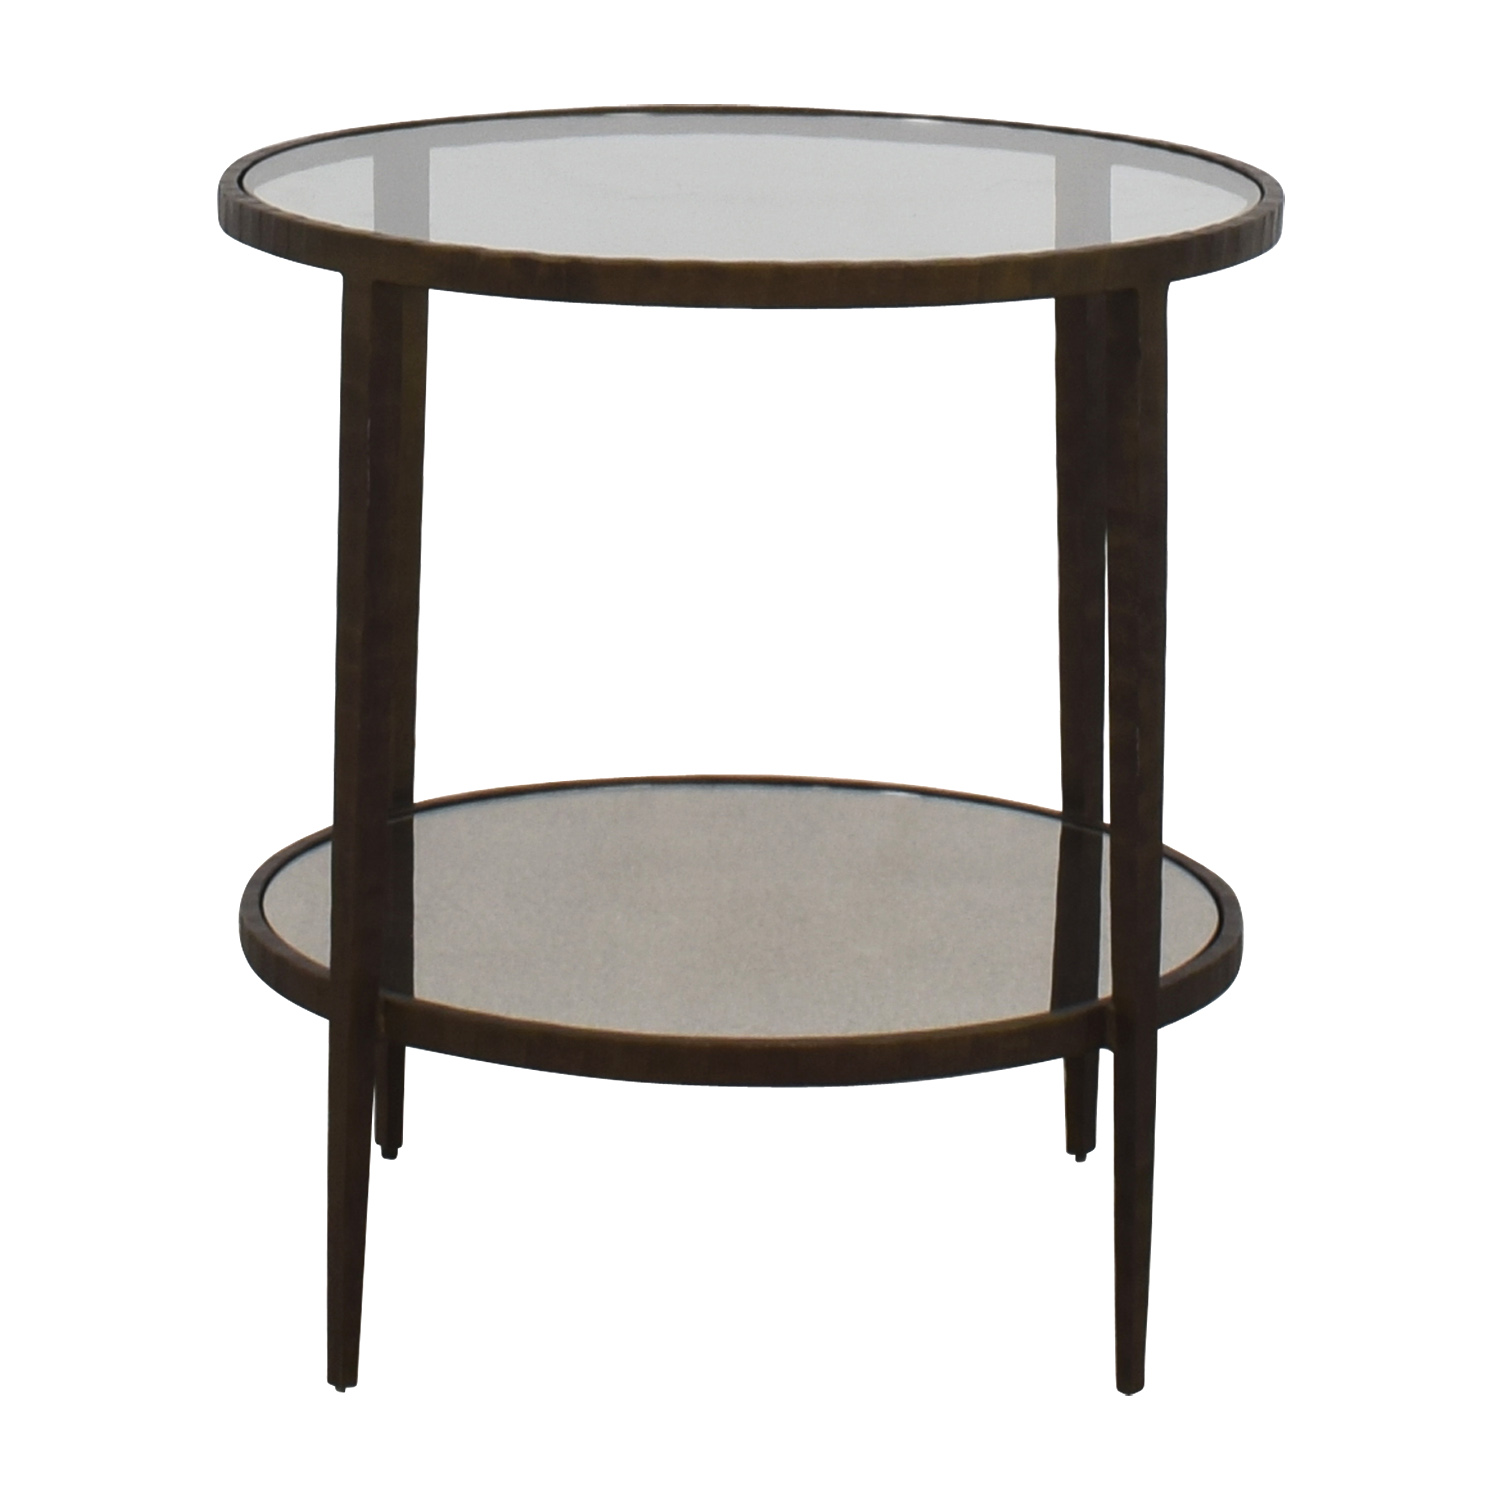 Crate Barrel Claremont Round Glasirrored Side Table End